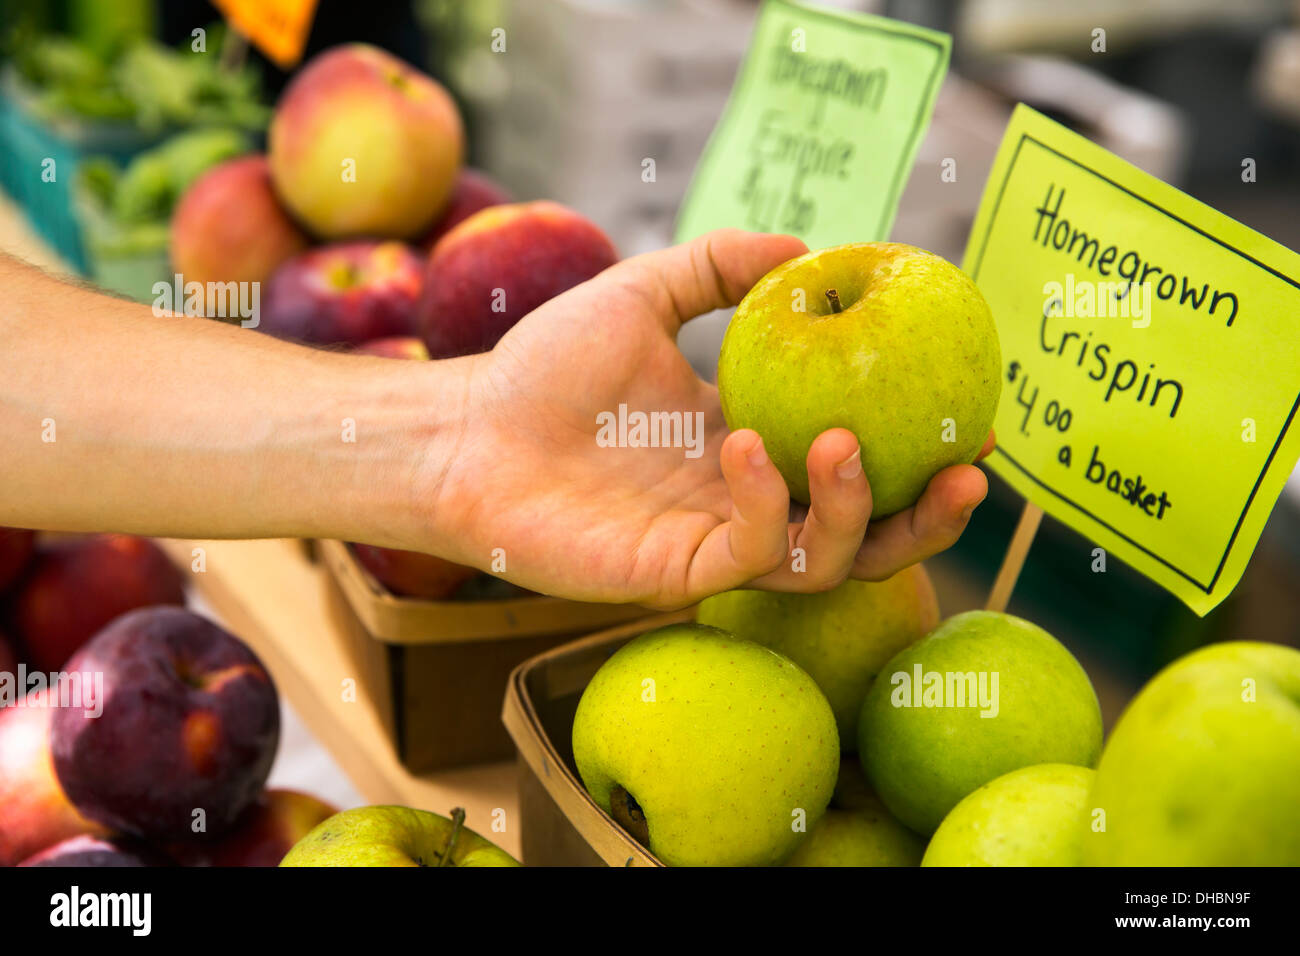 A farm stand with fresh fruit on display.  A person selecting apples. Stock Photo